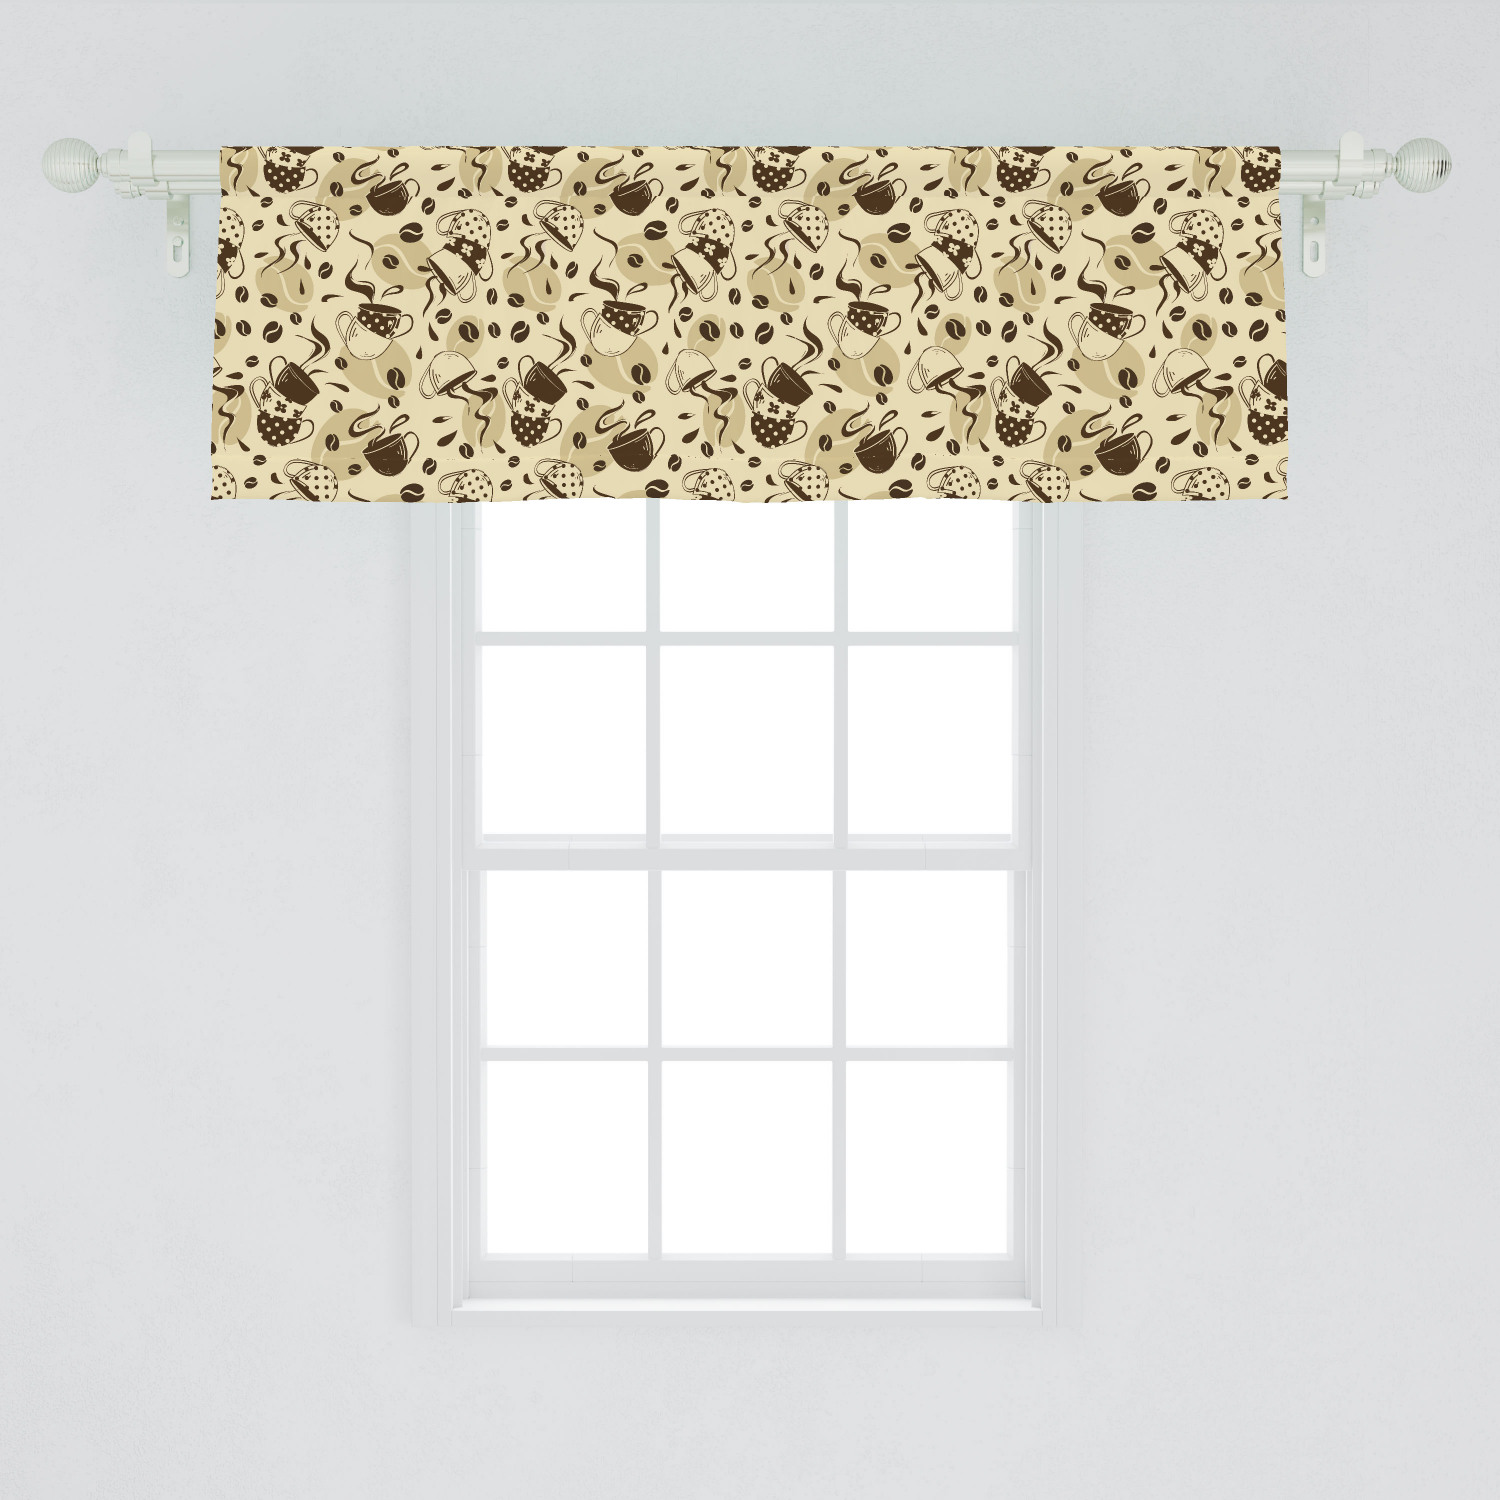 Modern Window Valance Contemporary Coffee Cups Polka Dots And Beans Roasted Graphic Design Curtain Valance For Kitchen Bedroom Decor With Rod Pocket By Ambesonne Walmart Com Walmart Com